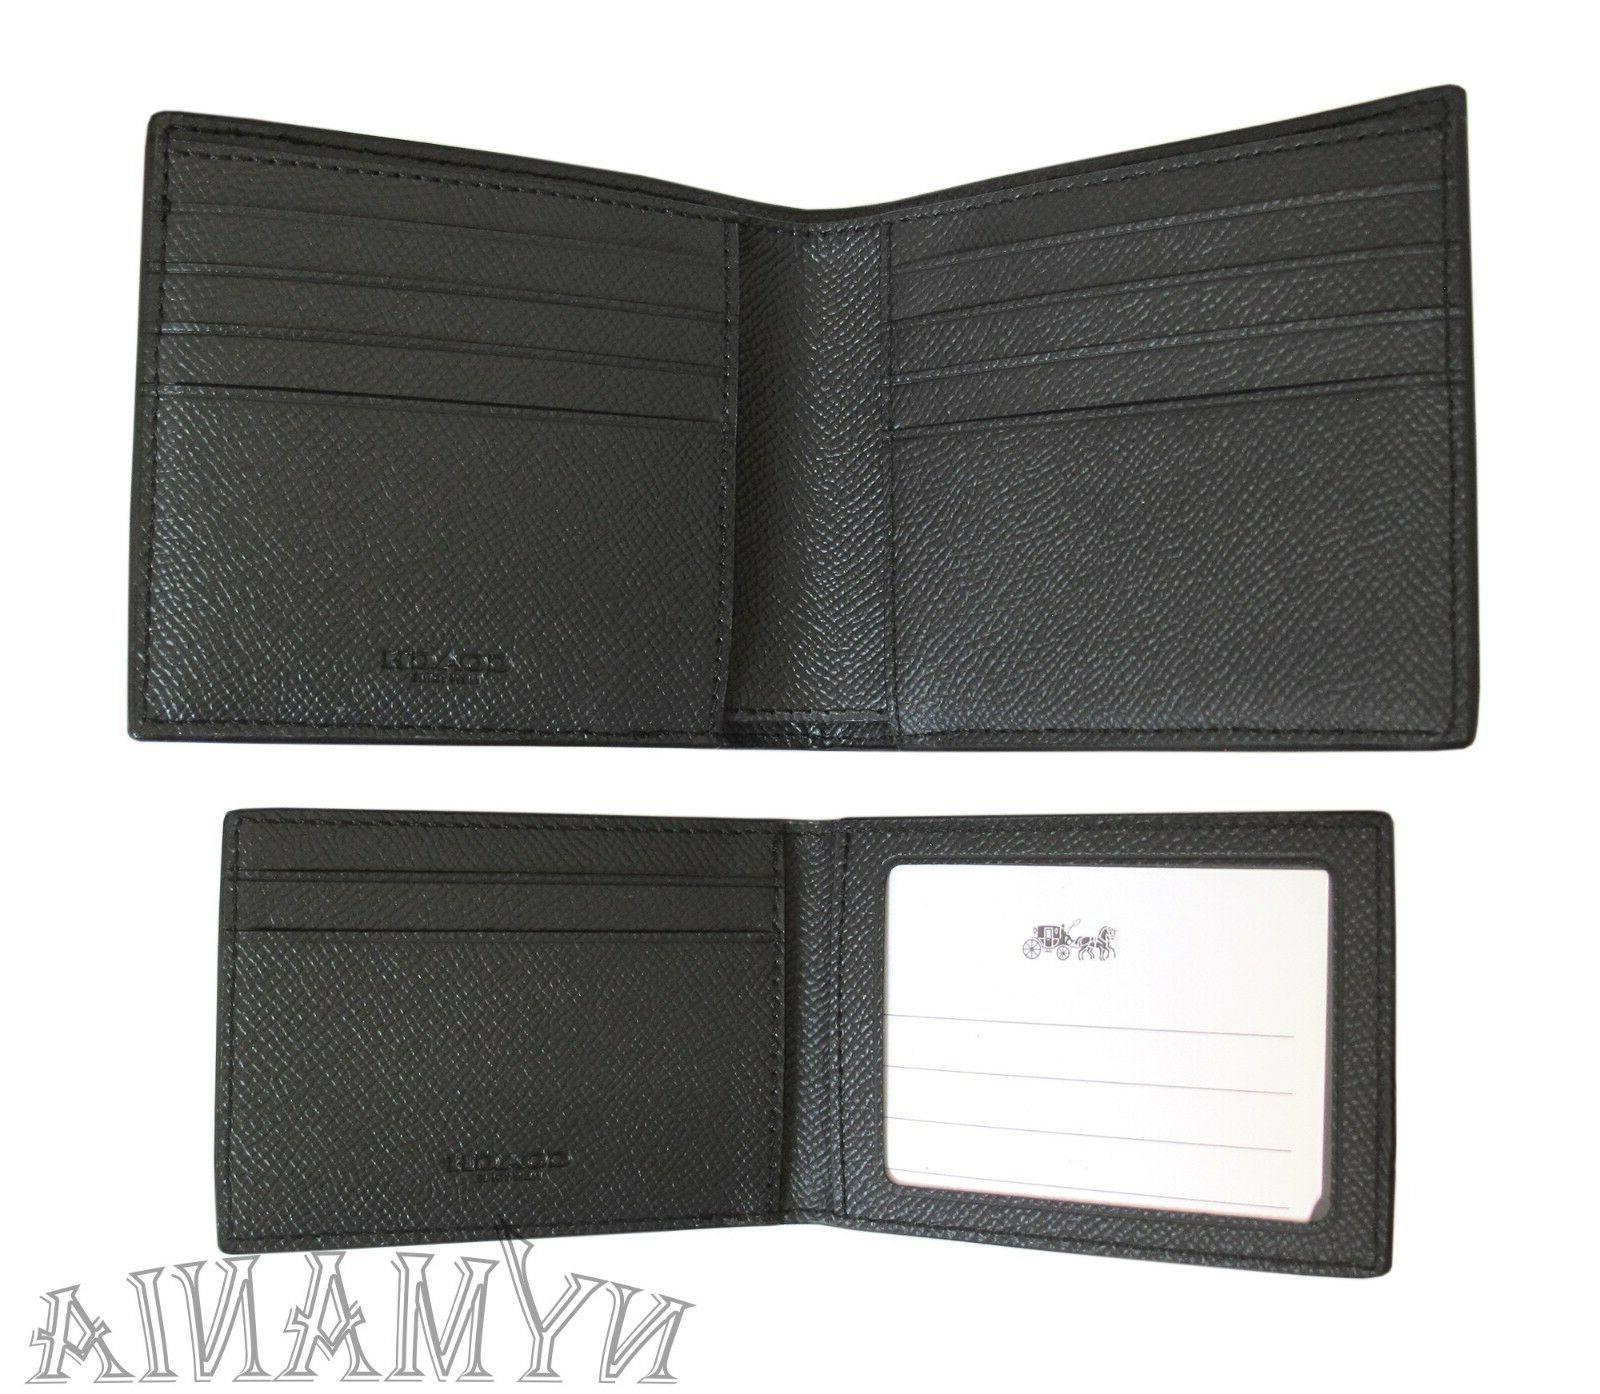 New COACH 3-IN-1 Leather Black BOX